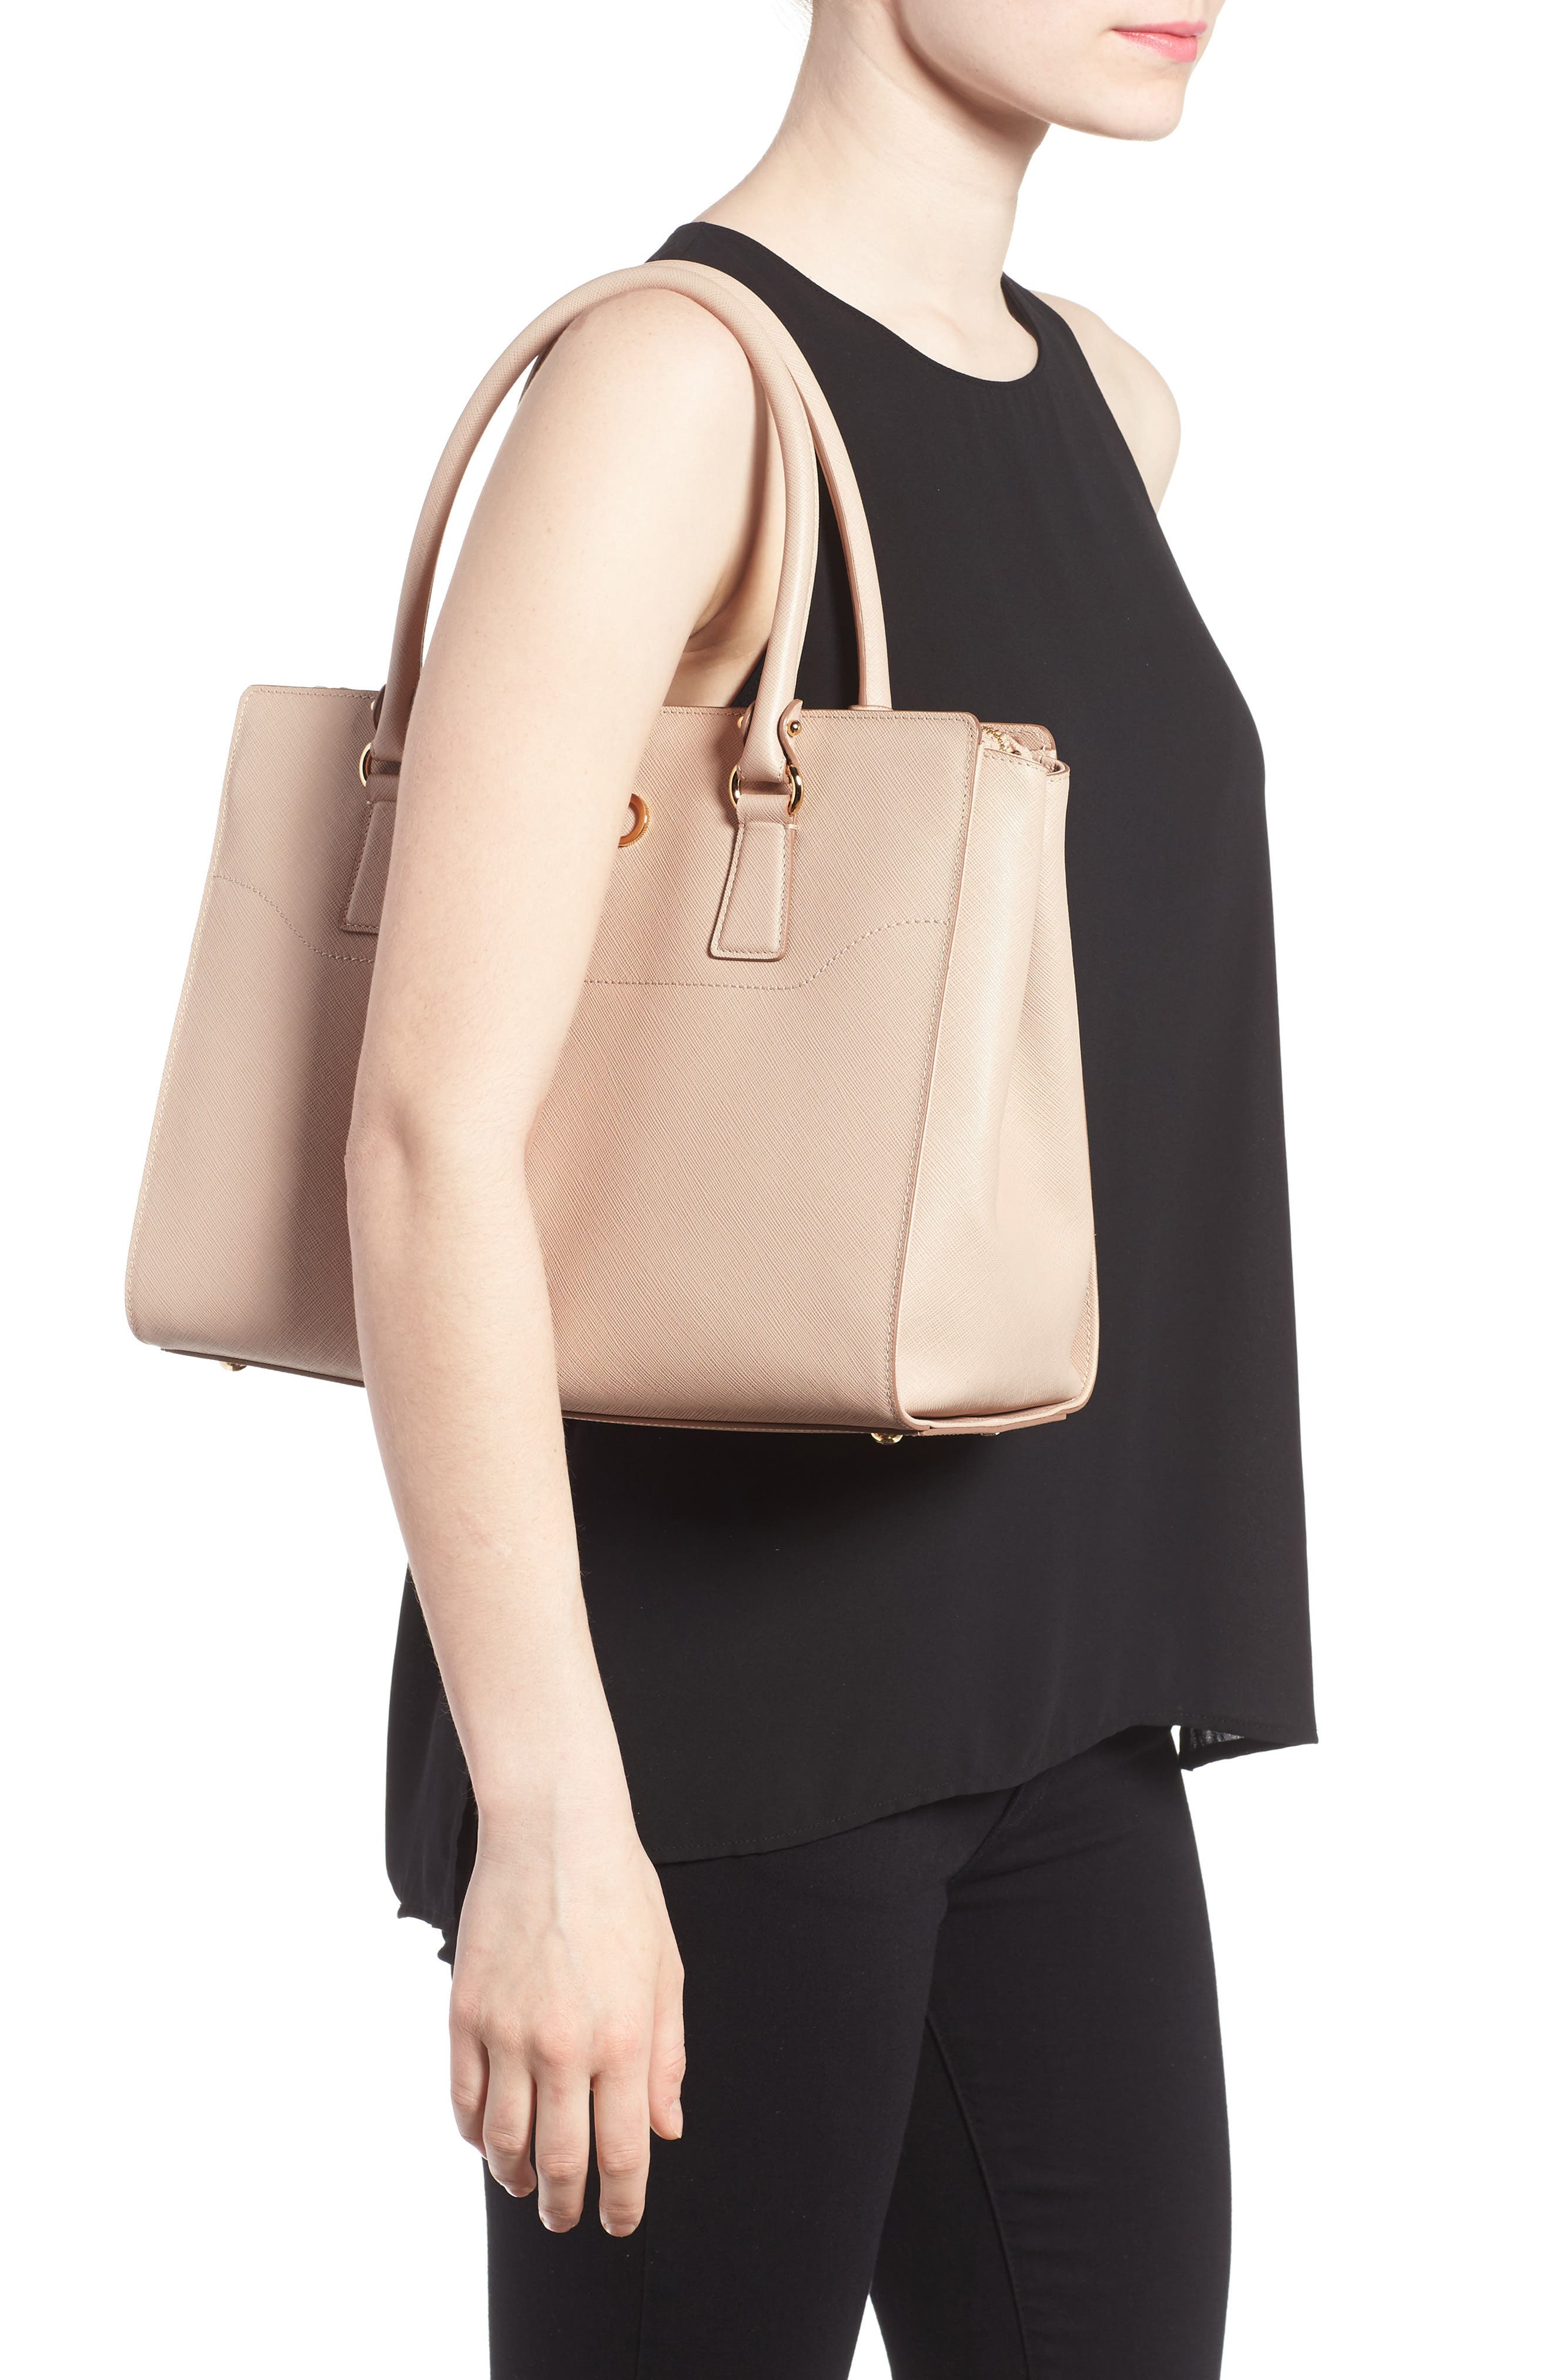 Saffiano Leather Tote,                             Alternate thumbnail 2, color,                             New Bisque Macaron